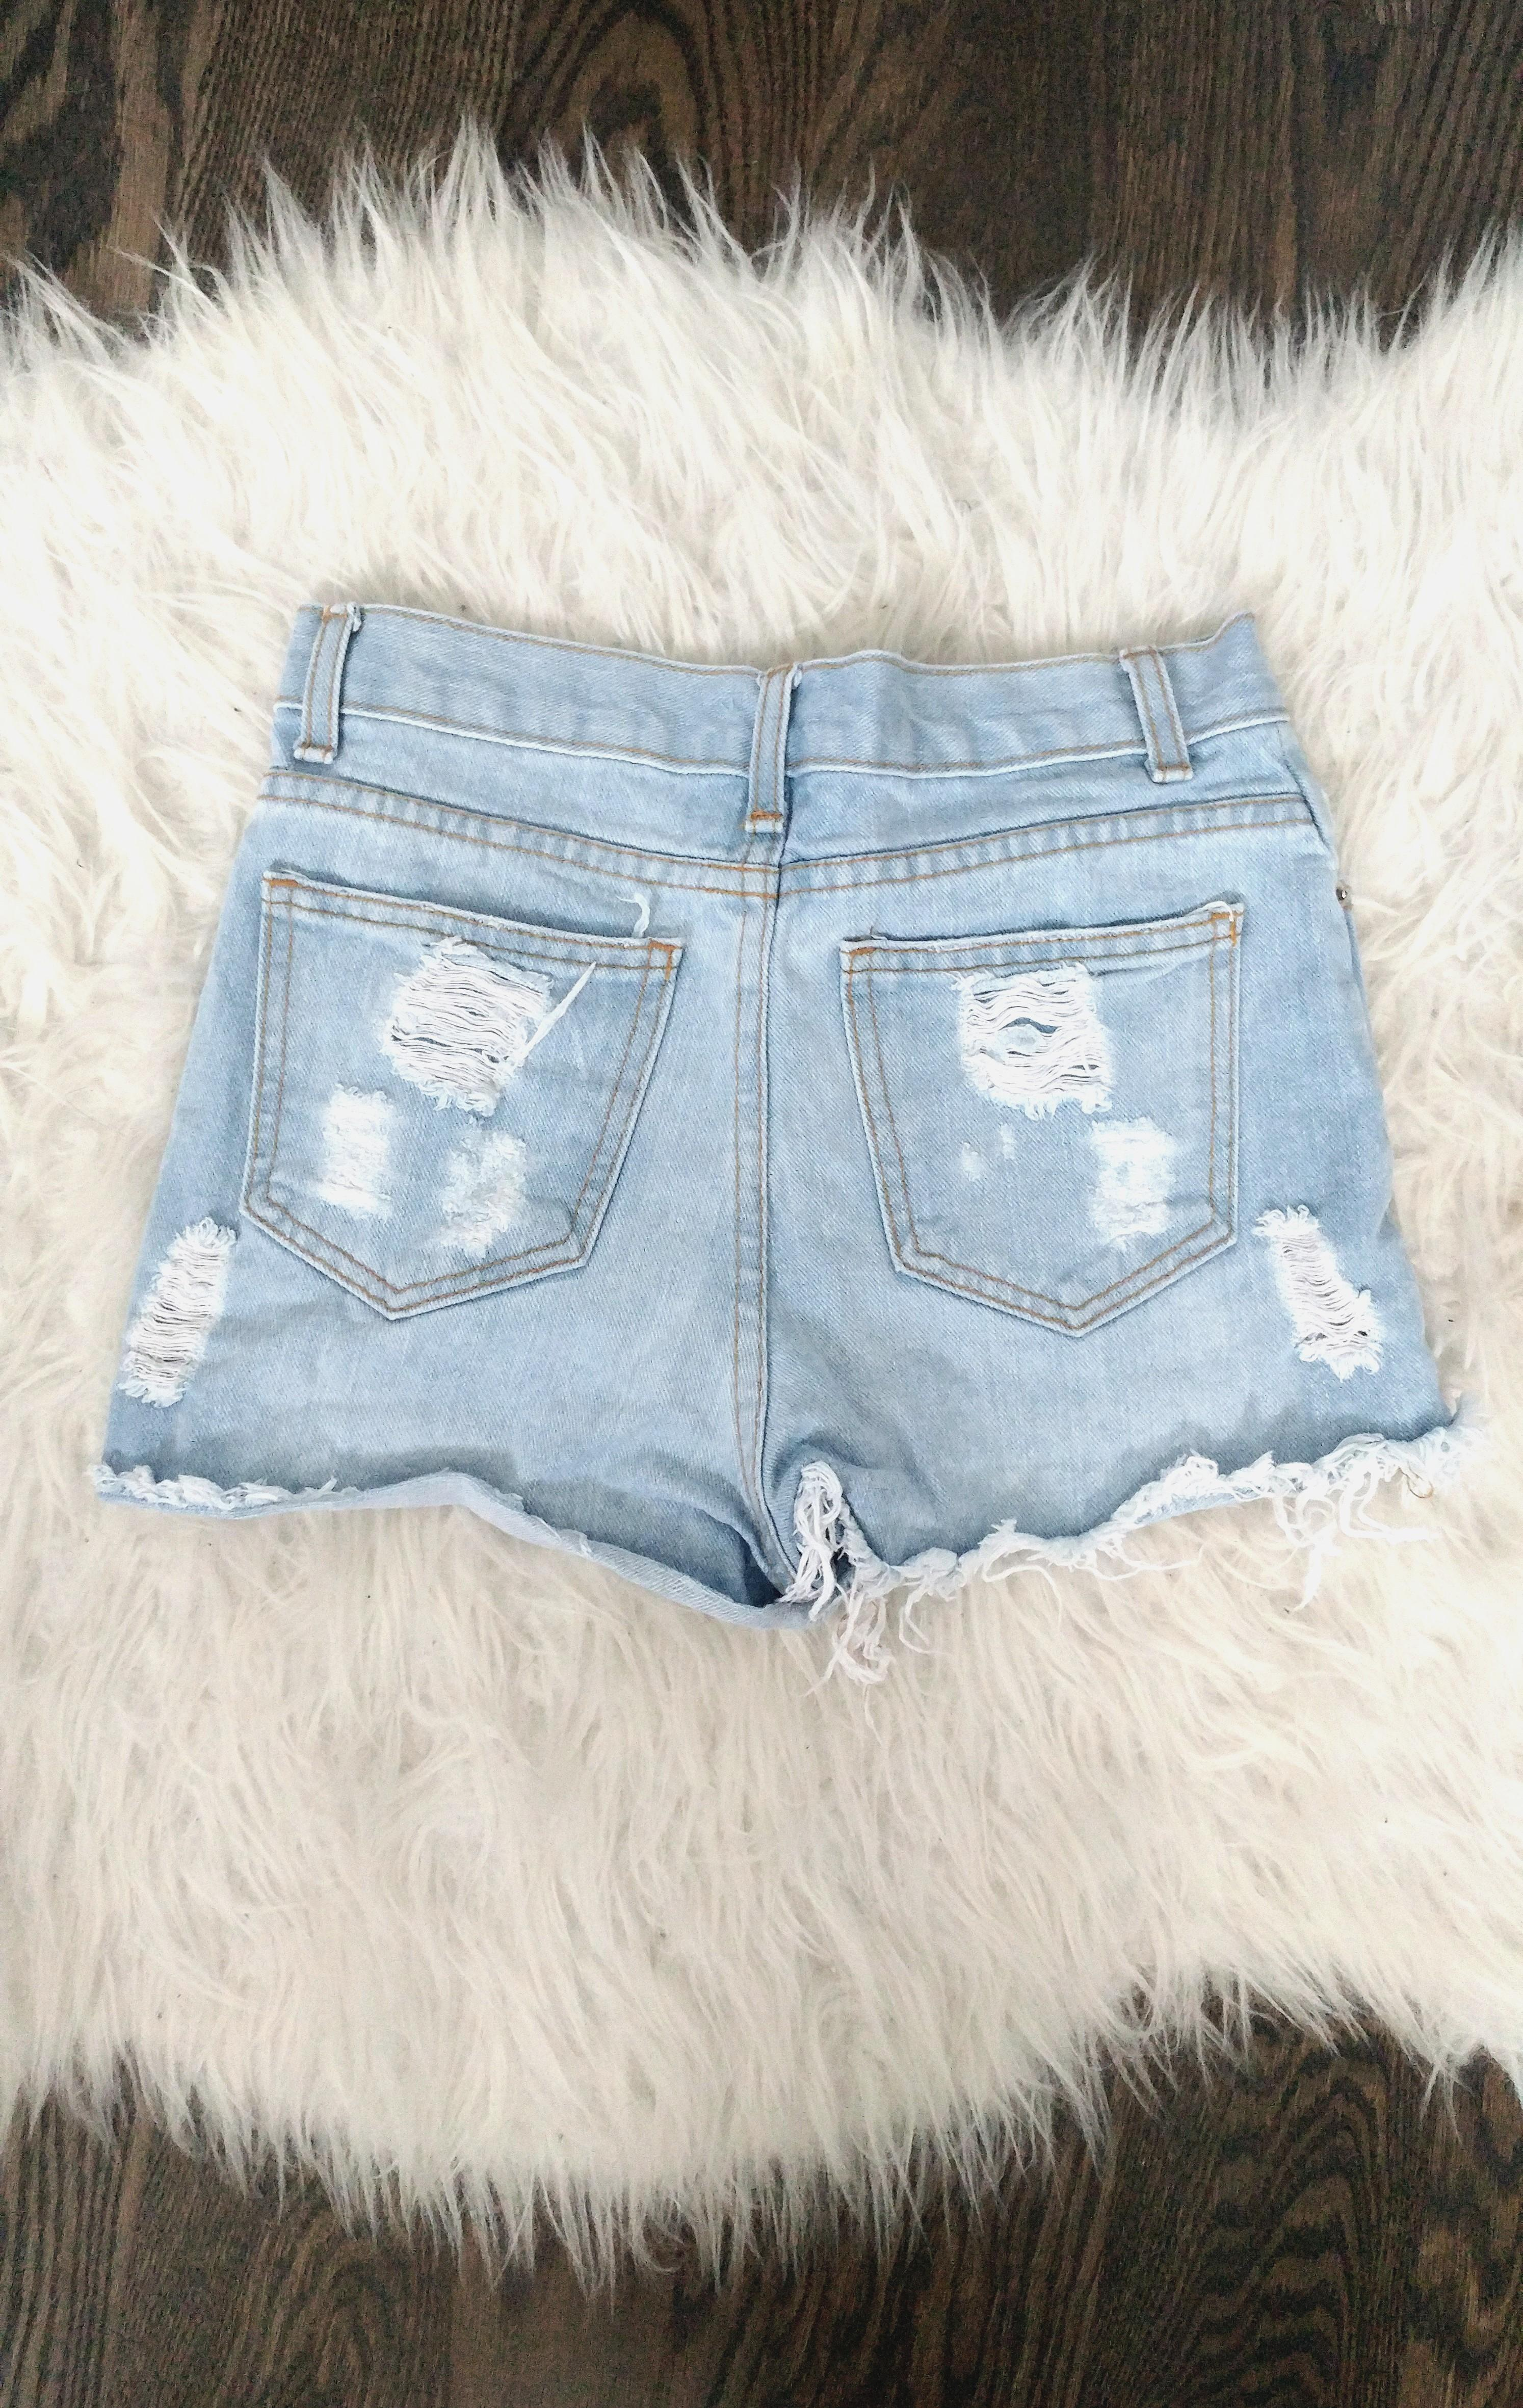 High-waisted shorts from Brandy Melville